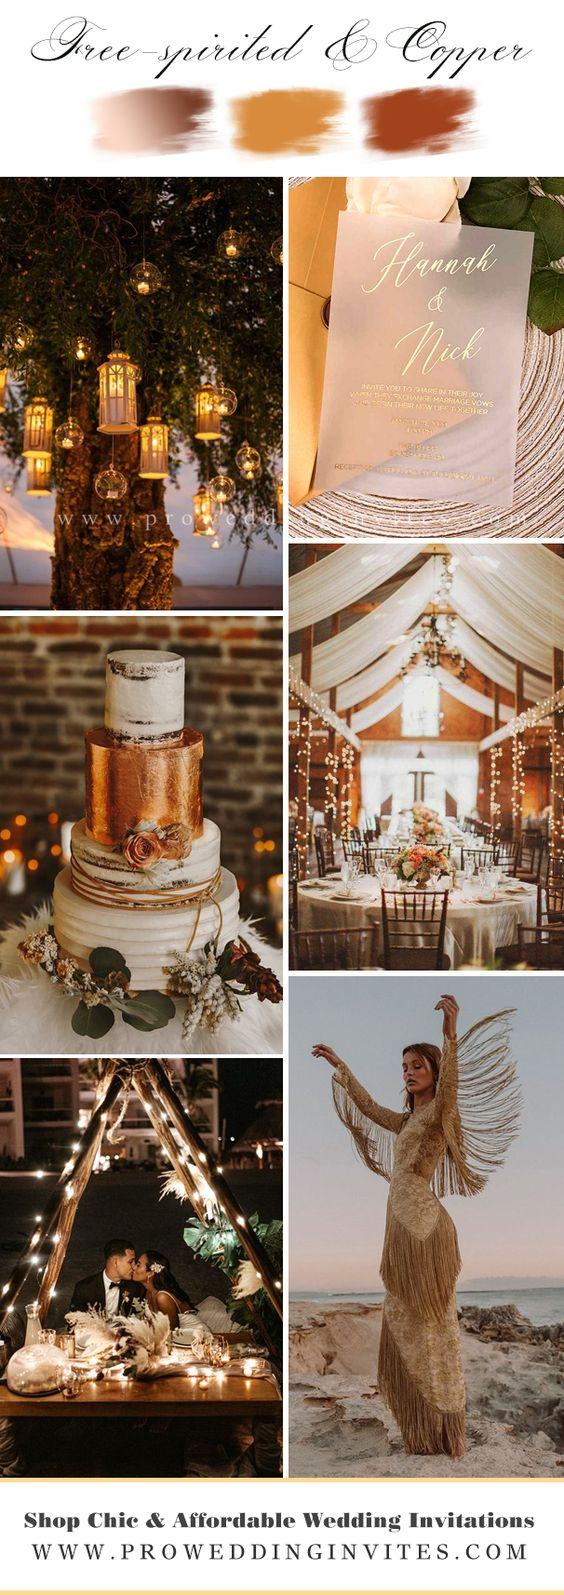 The stylistics of the boho wedding is easy to create and it is so beautiful. We have collected the best vellum wedding invitations for your bohemian theme wedding.